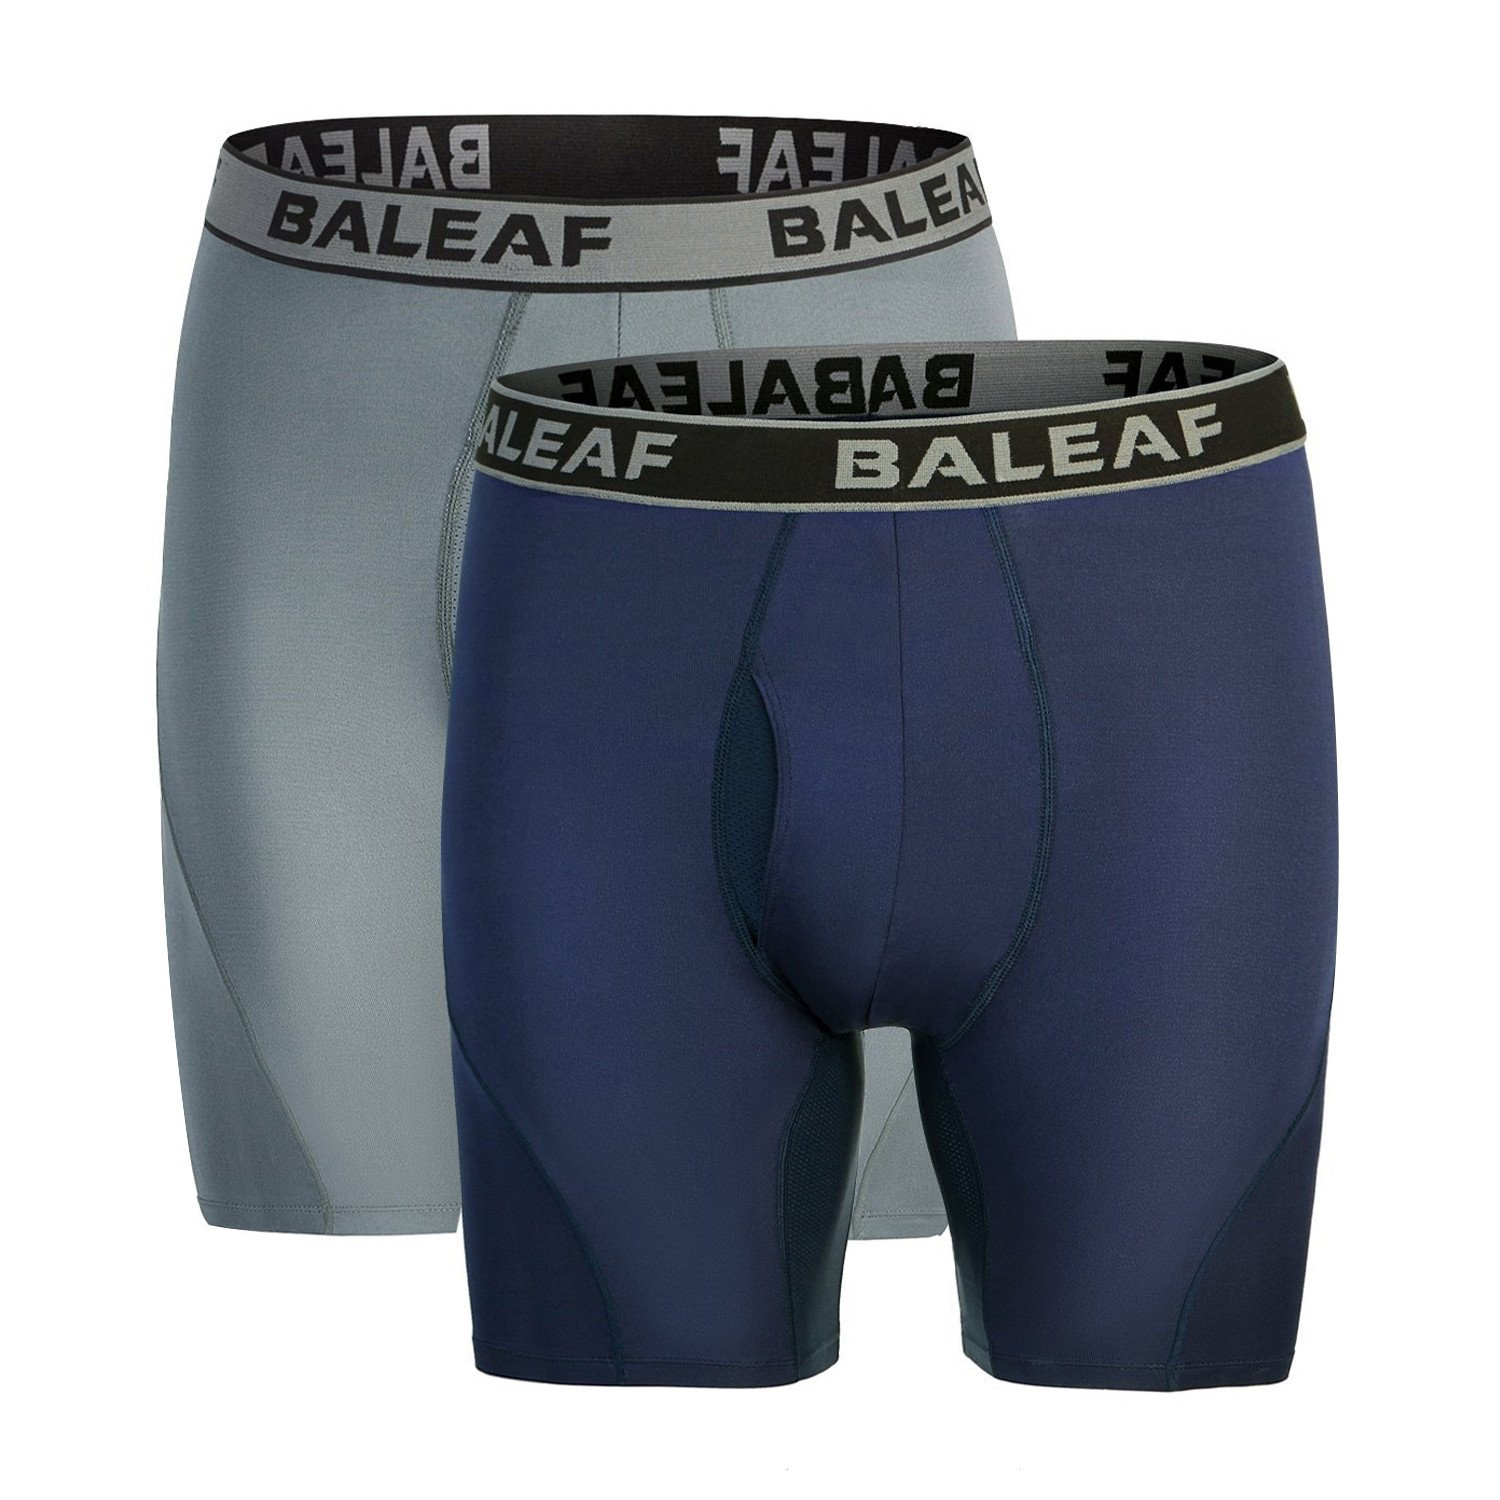 Baleaf Men's 6 Sport Boxer Briefs Performance Underwear (2-Pack) Baleafabd1860904216ma